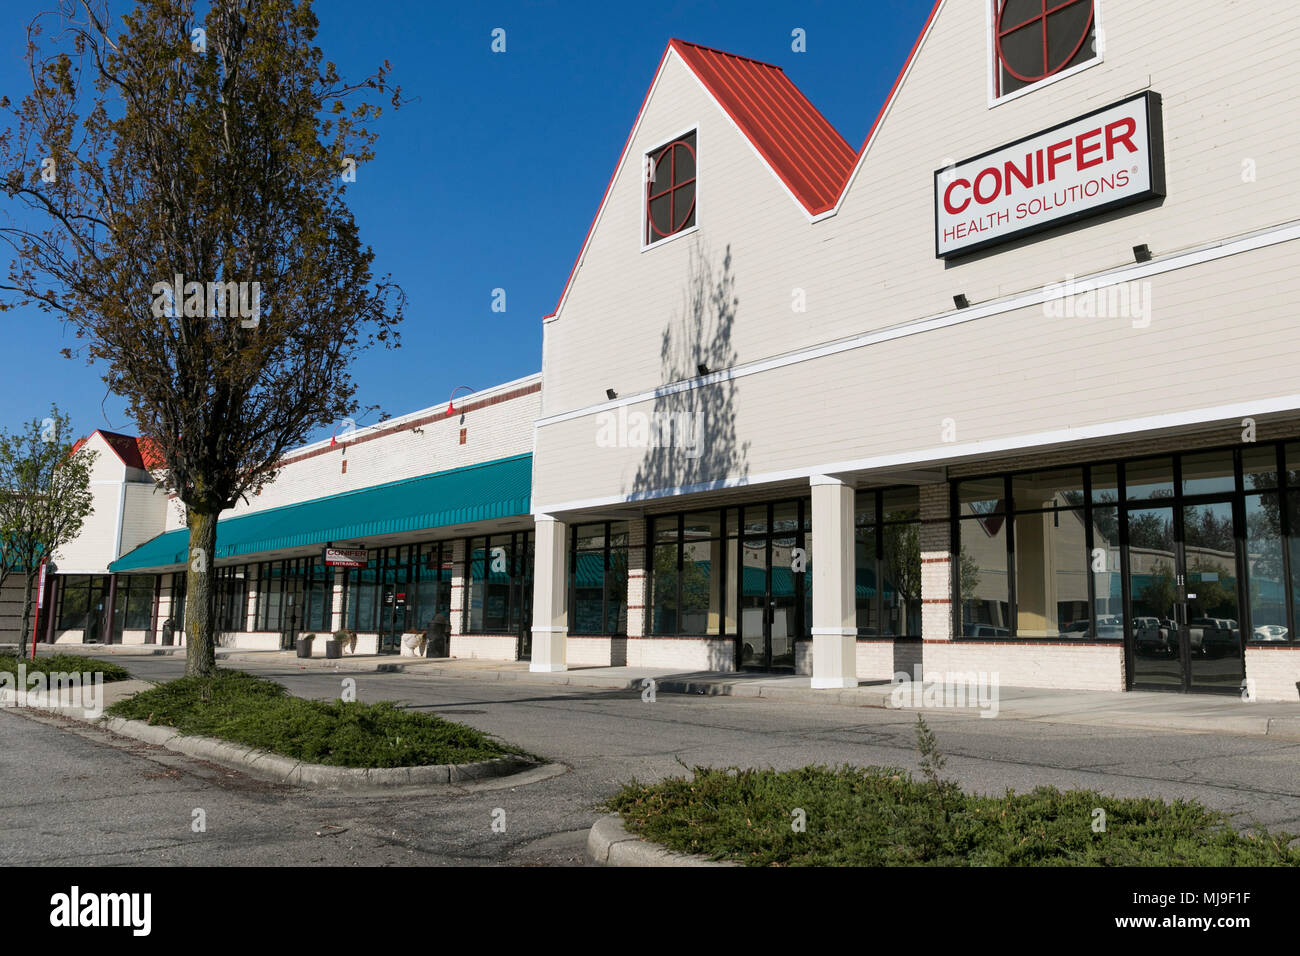 A logo sign outside of a facility occupied by Conifer Health Solutions in Annapolis, Maryland on April 29, 2018. - Stock Image